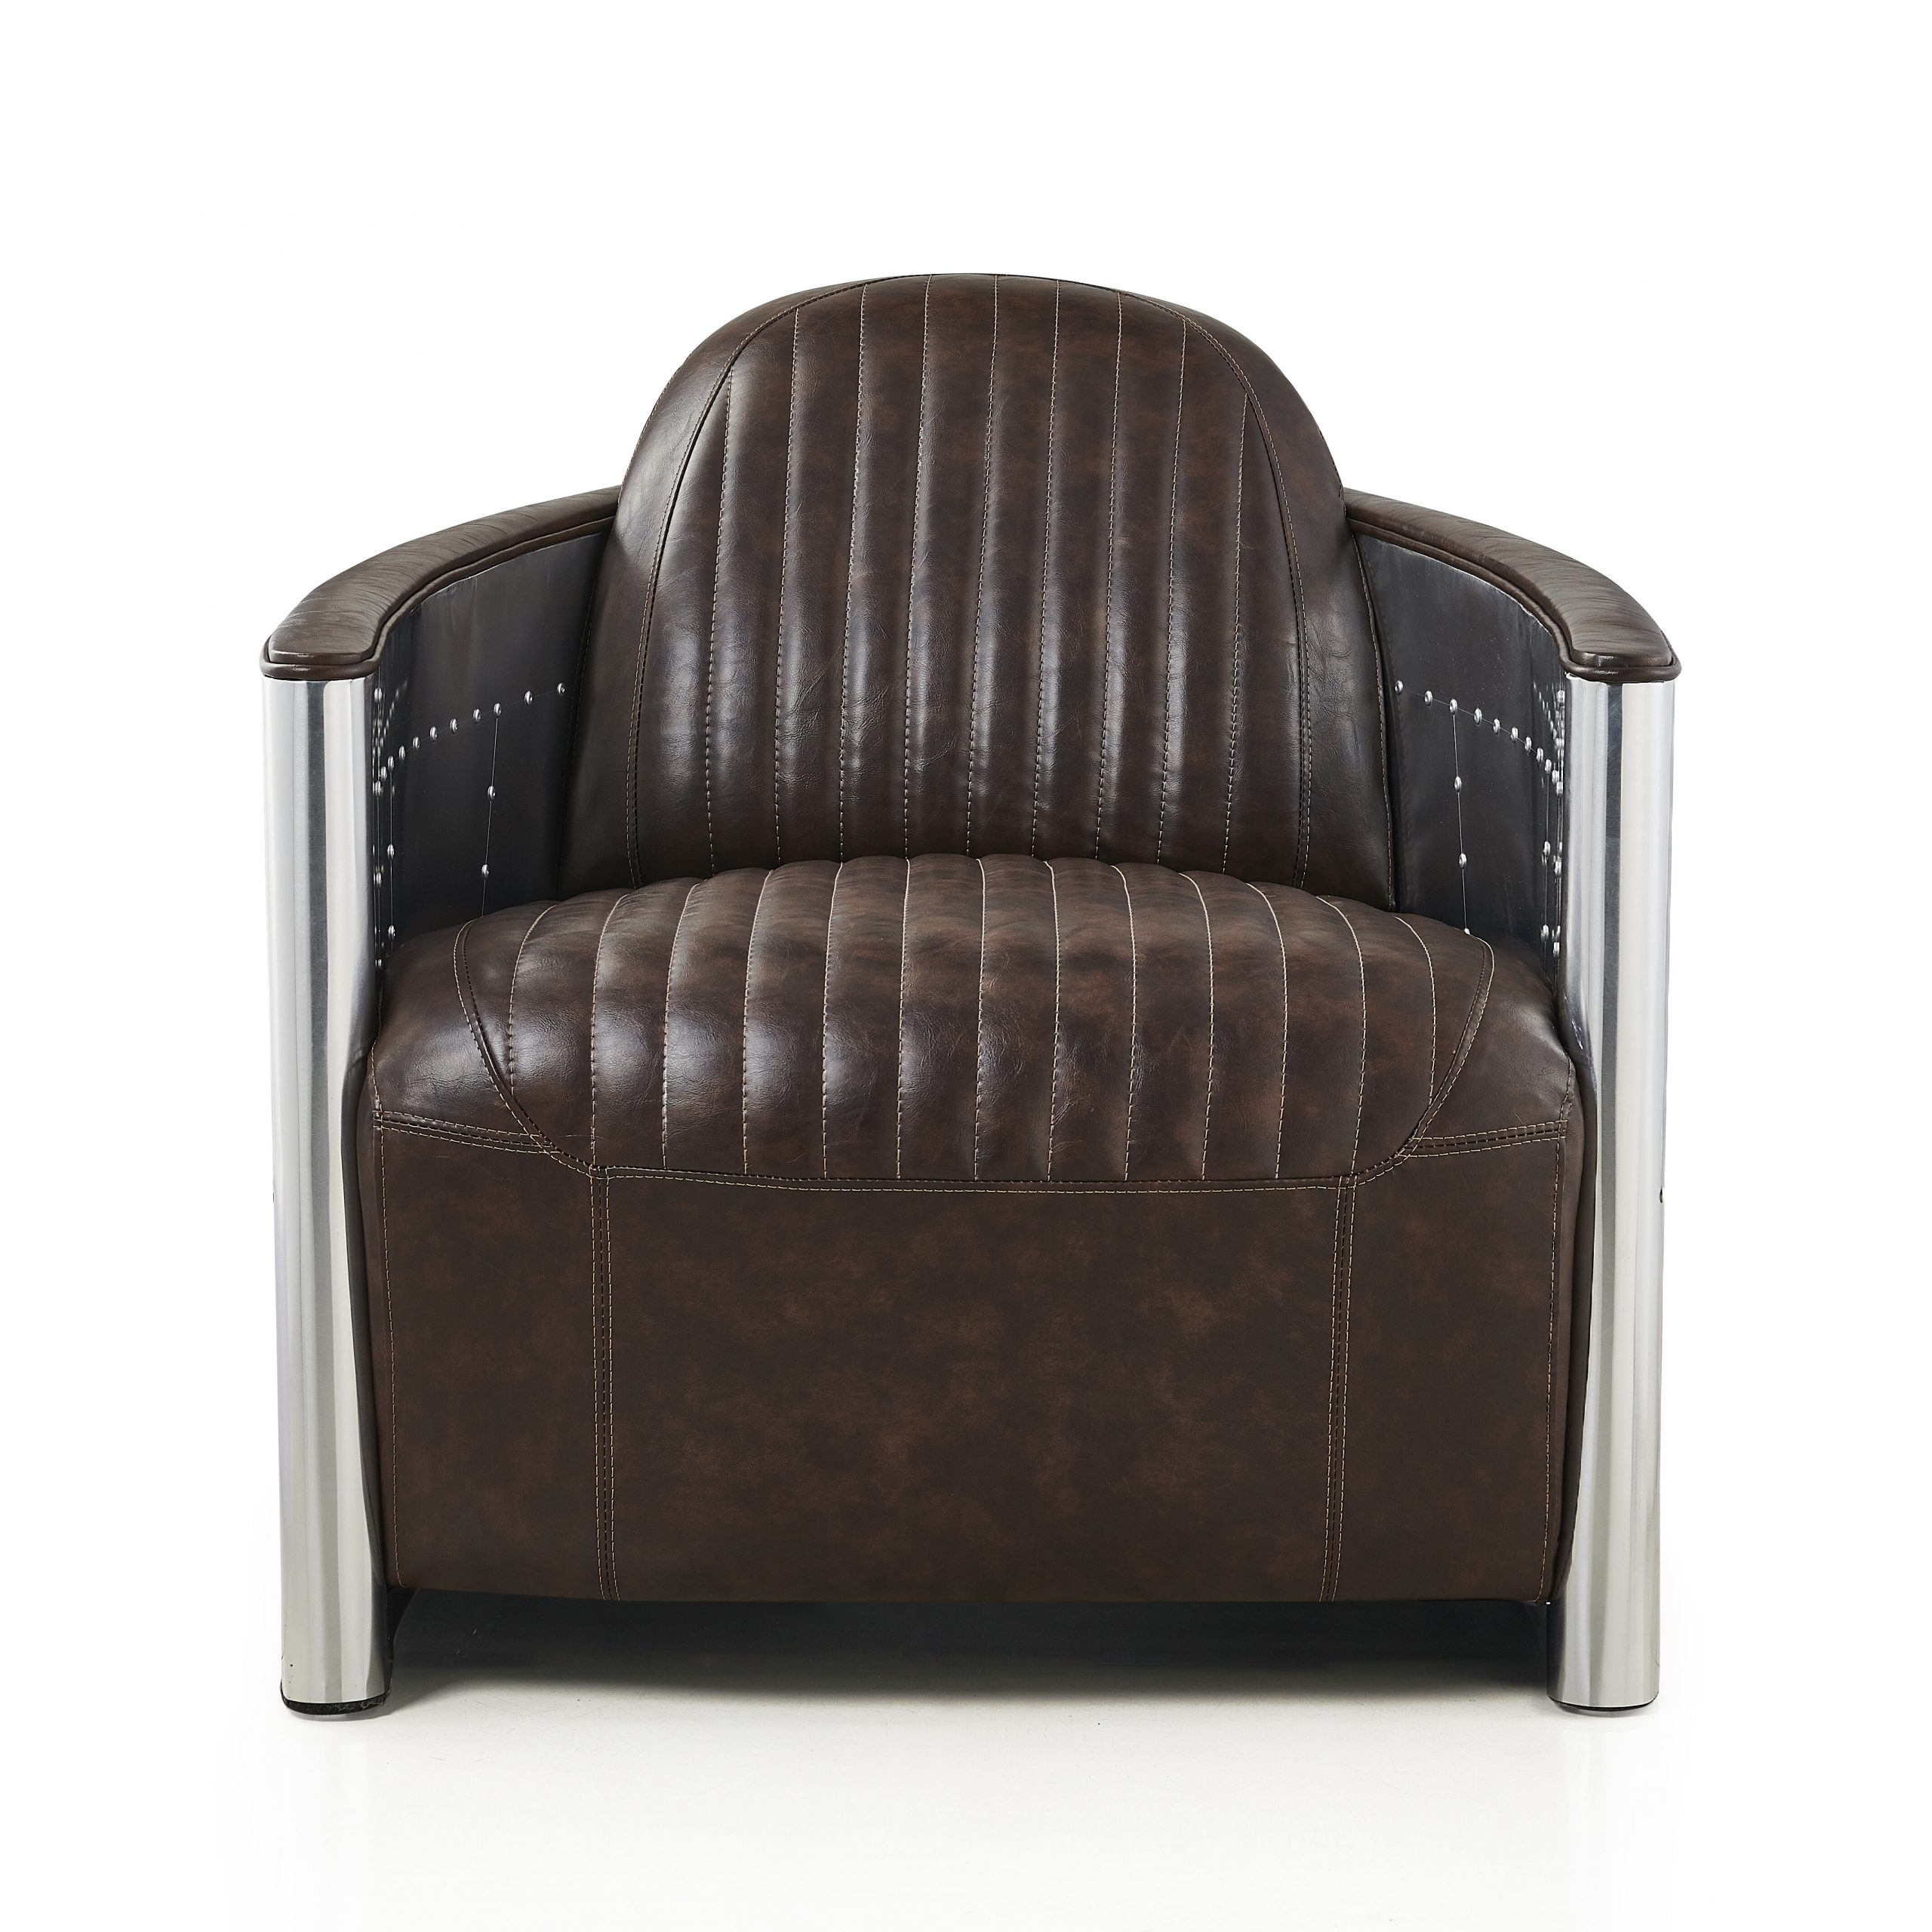 Wayfair With Regard To Newest Hazley Faux Leather Swivel Barrel Chairs (View 7 of 20)